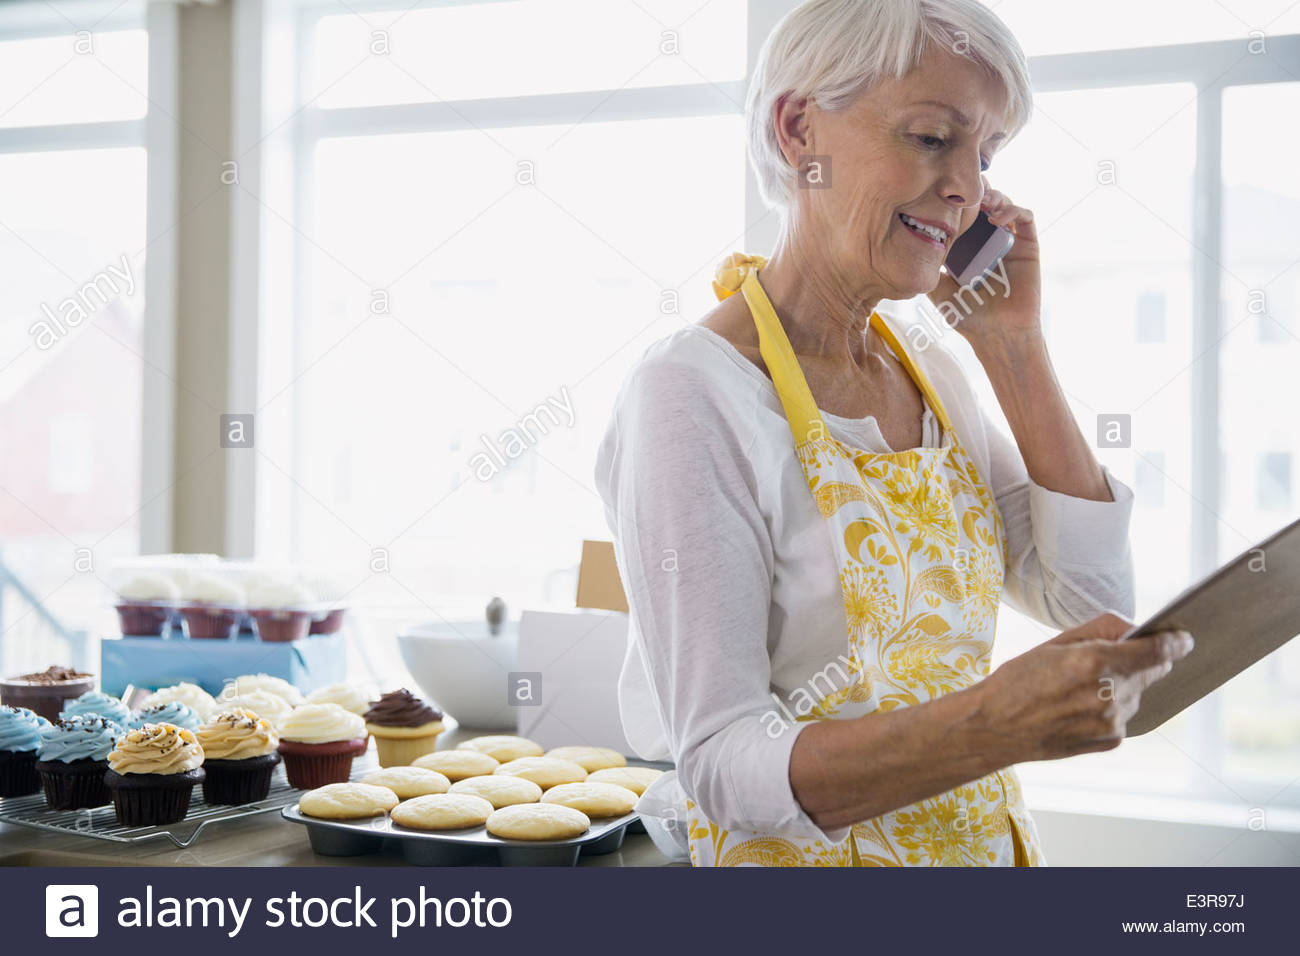 Woman on cell phone baking cupcakes in kitchen - Stock Image